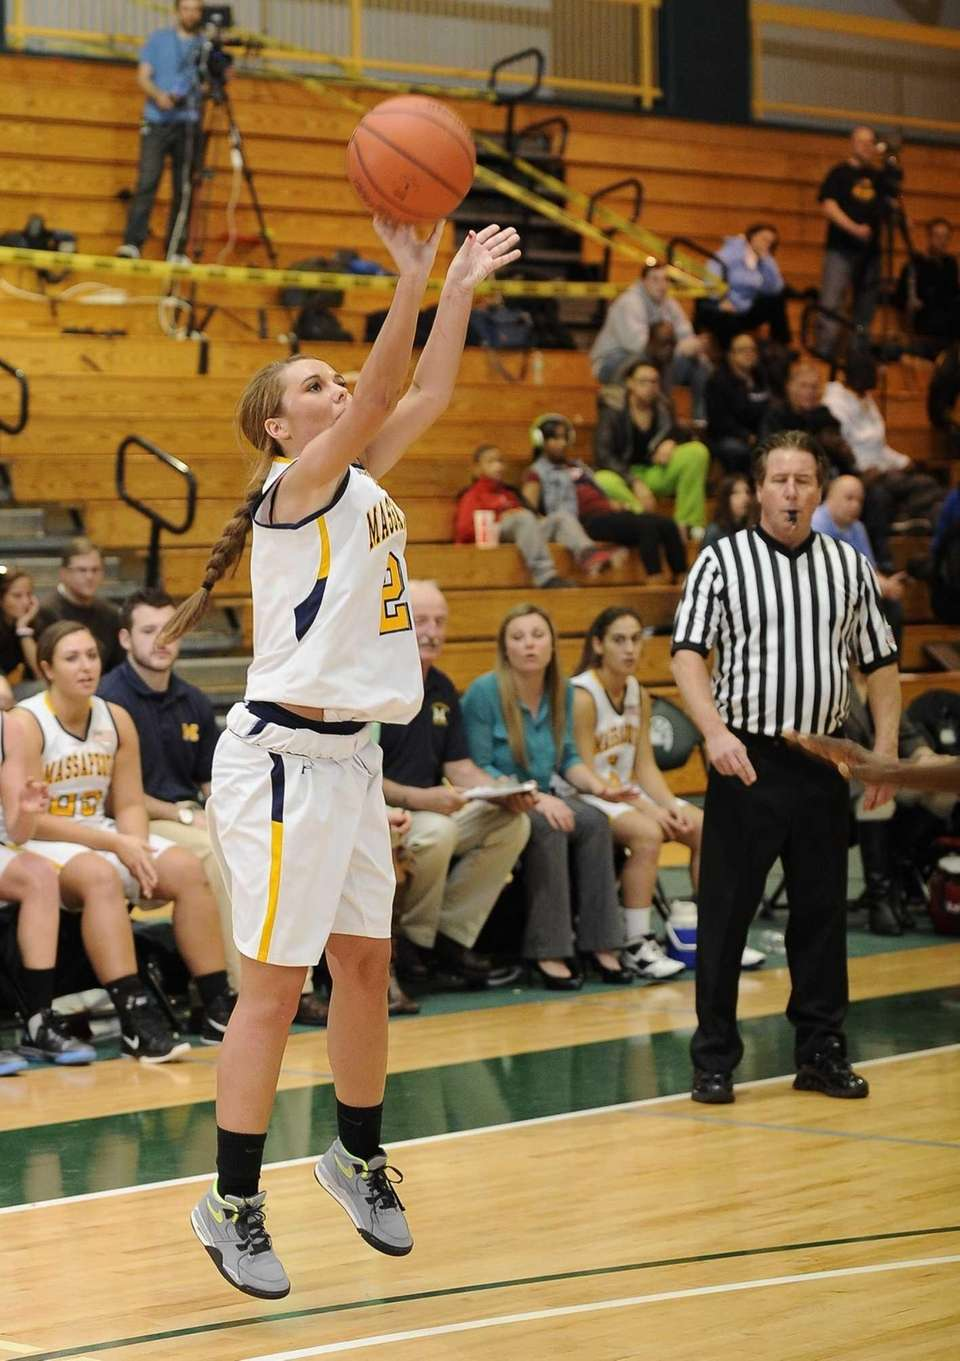 Massapequa's Danielle Doherty shoots against Uniondale in the